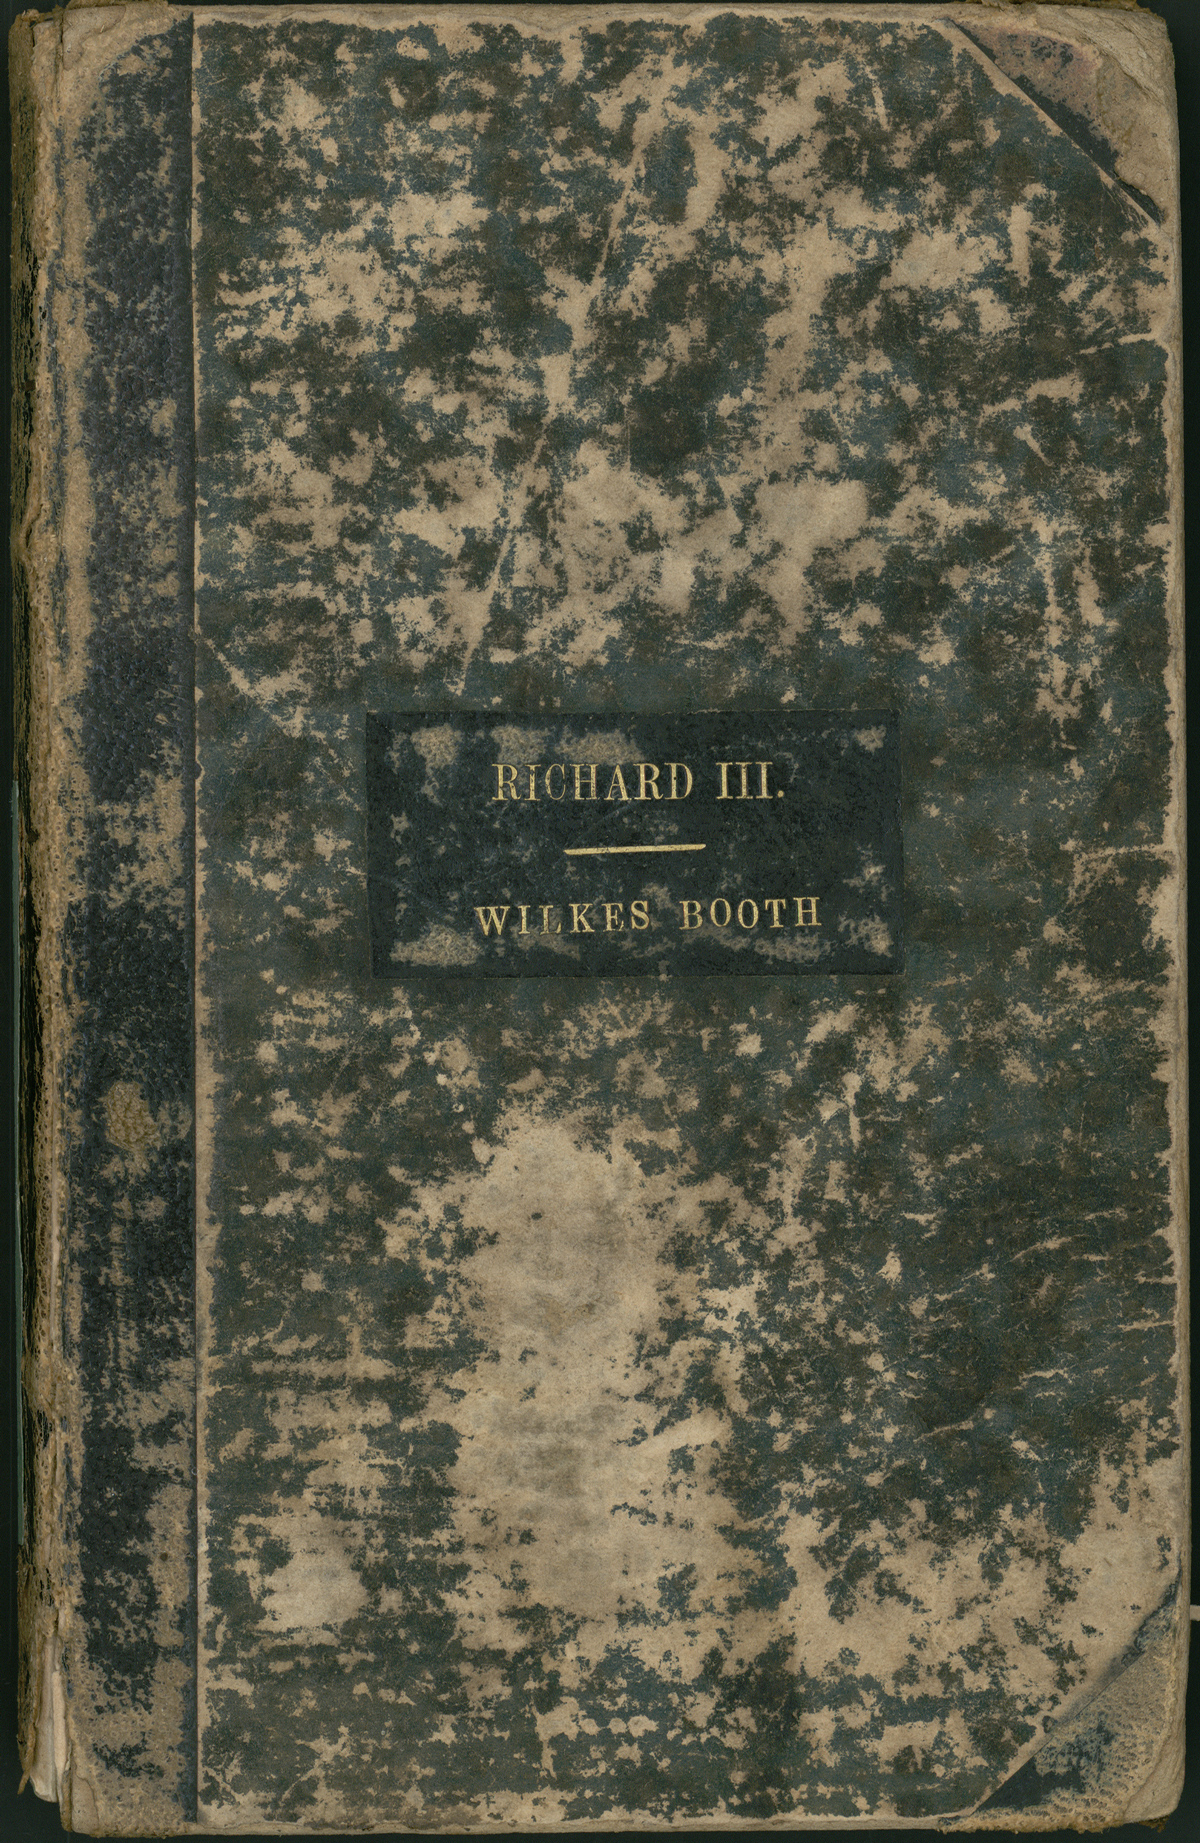 John Wilkes Booth's promptbook for Richard III.